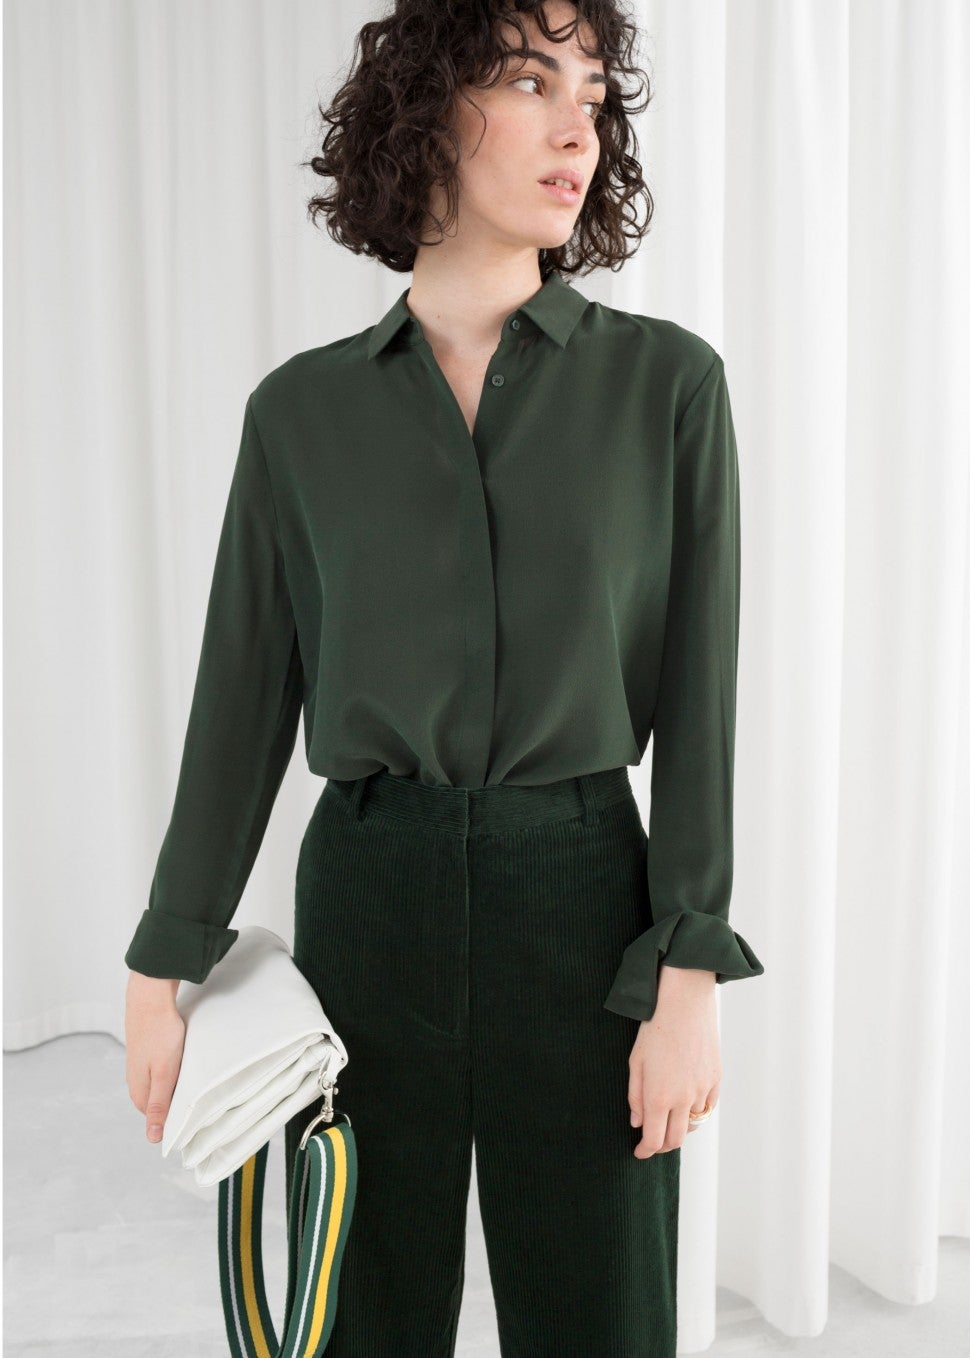 & Other Stories green blouse